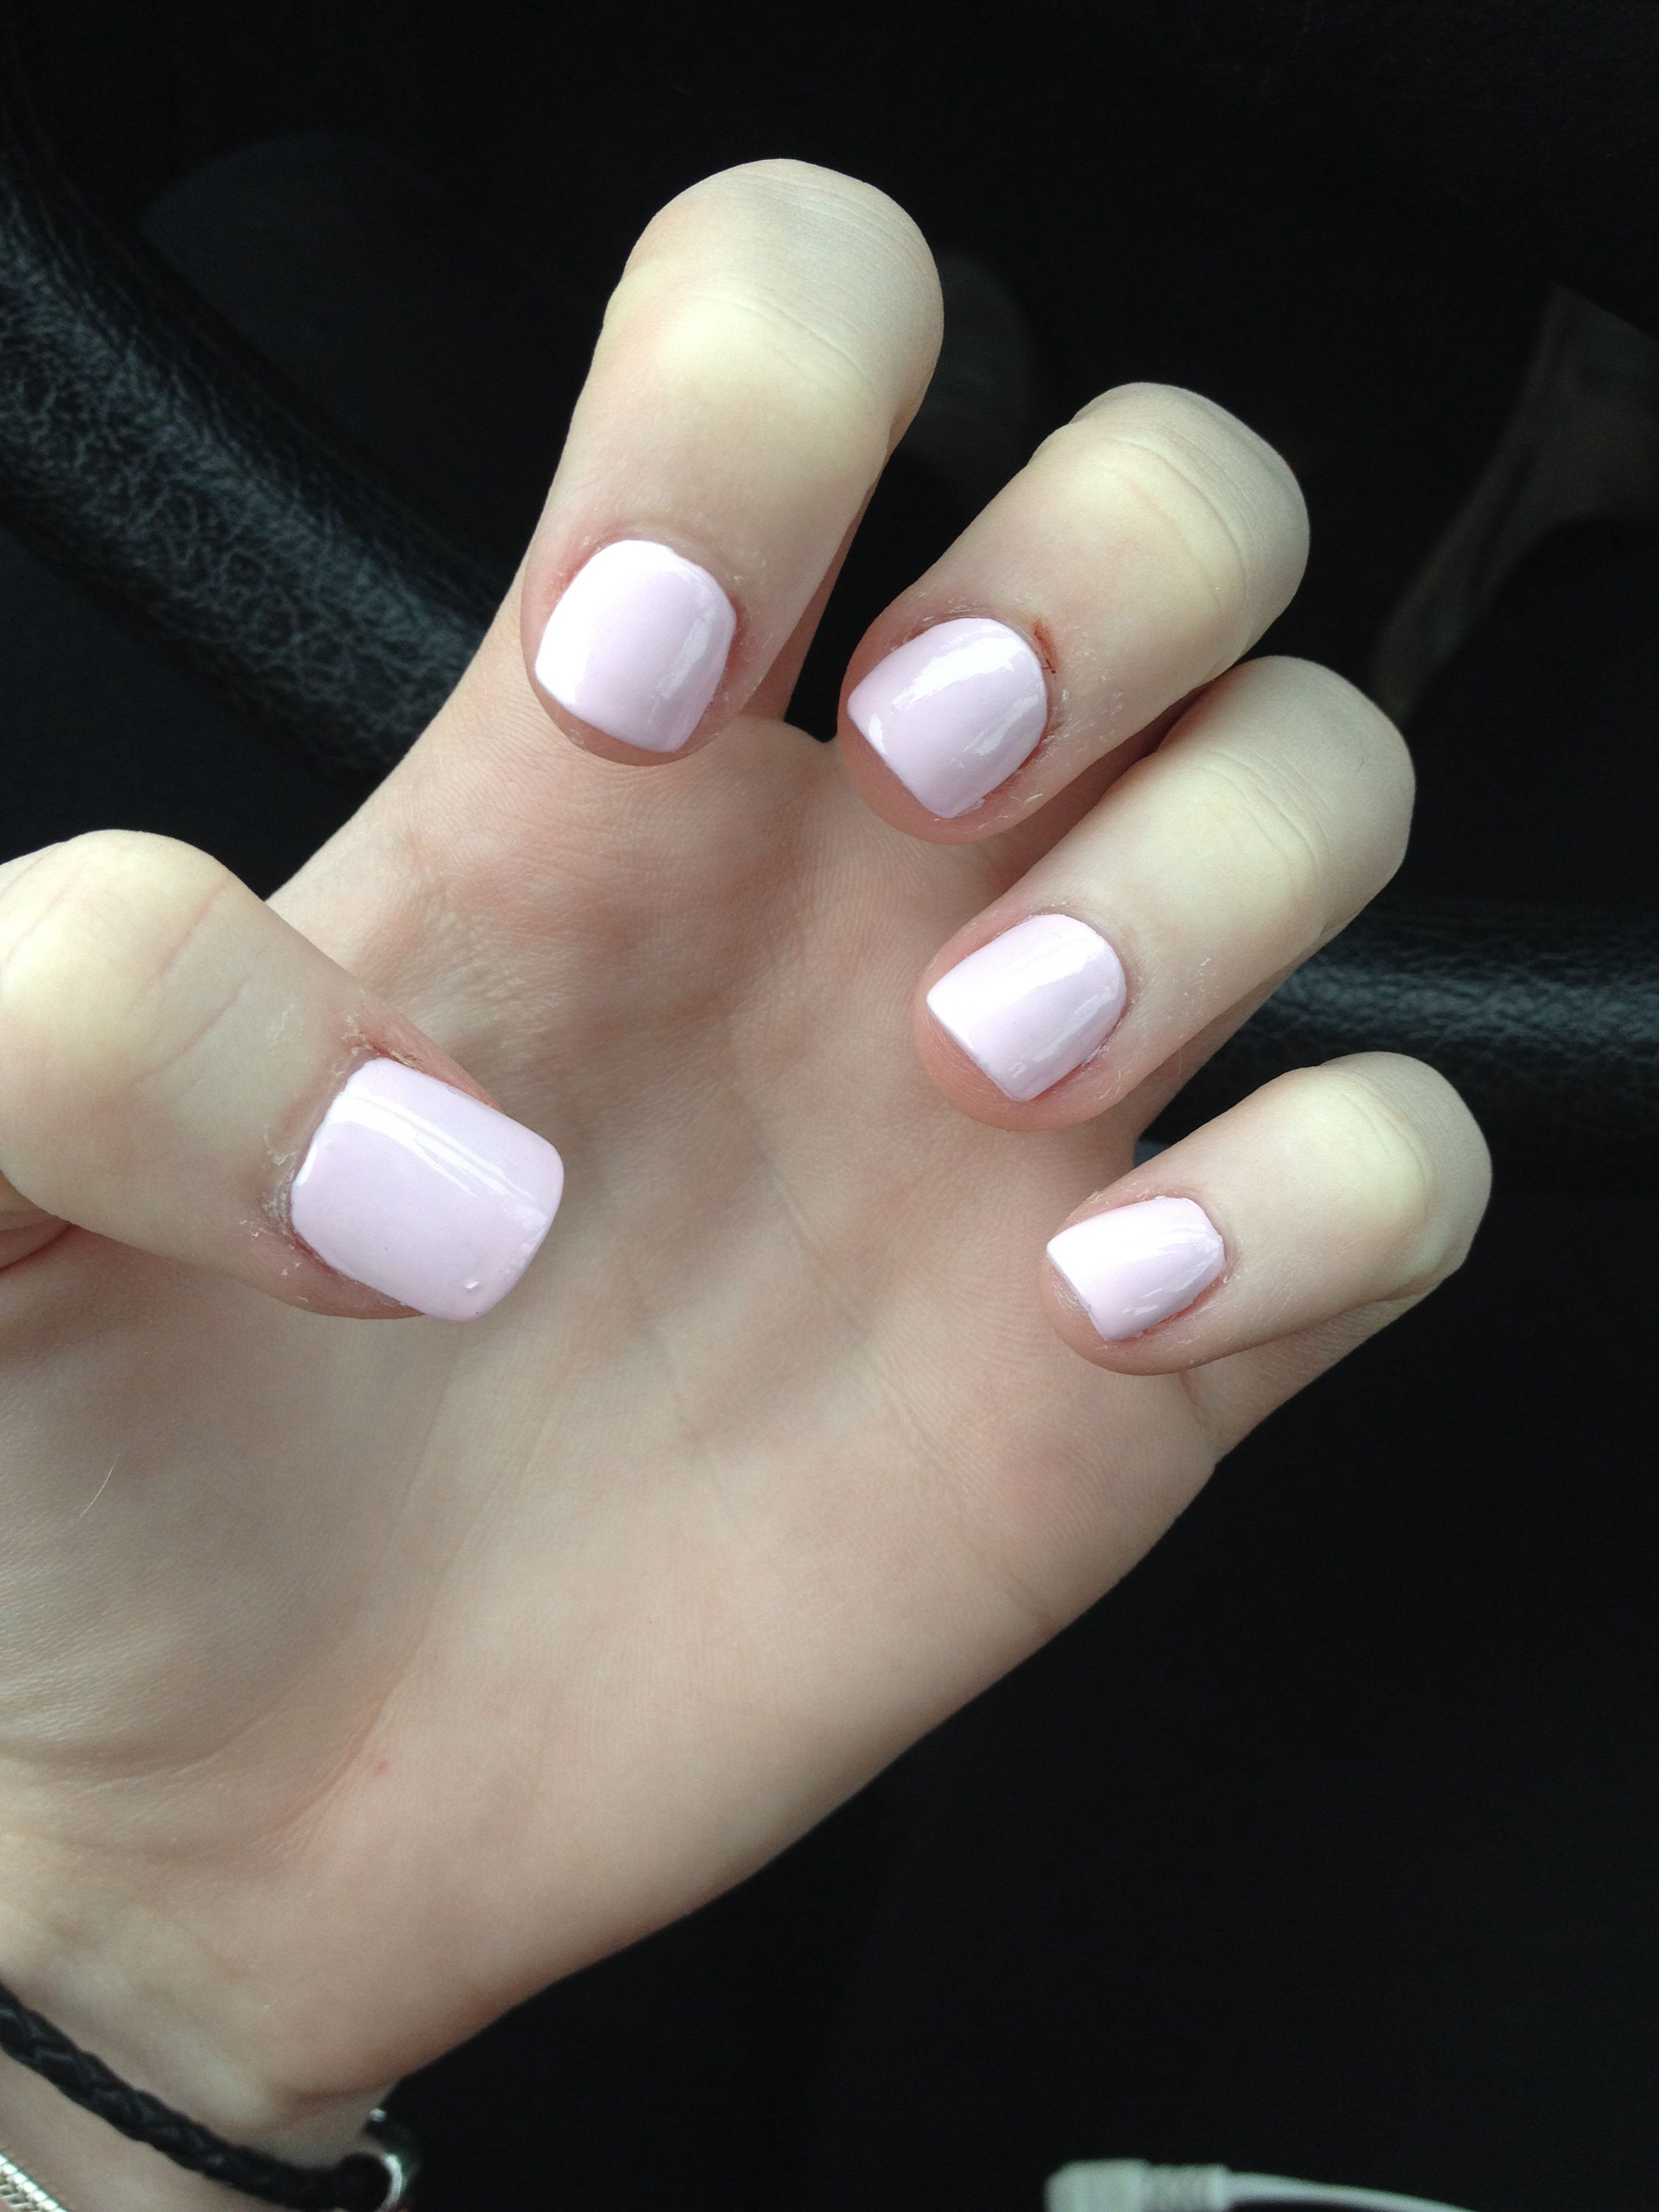 Pin By Sydney On Hair Nails Makeup Light Pink Acrylic Nails Pink Acrylic Nails Short Acrylic Nails